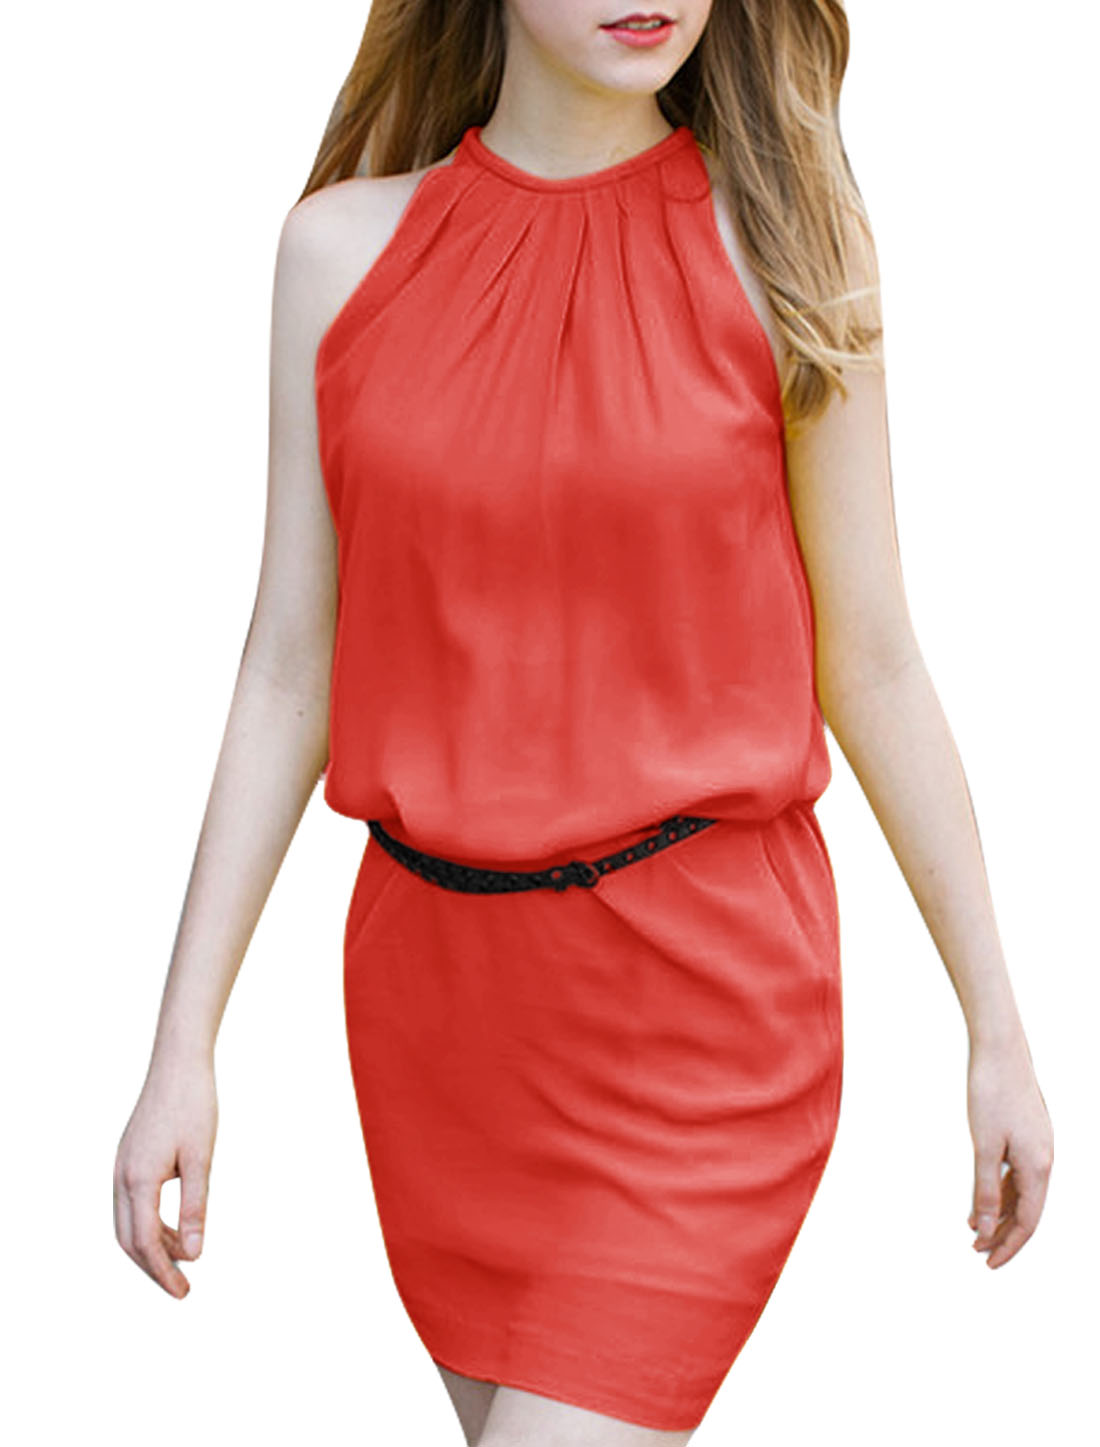 Women Halter Neck Sleeveless Dress Watermelon Red M